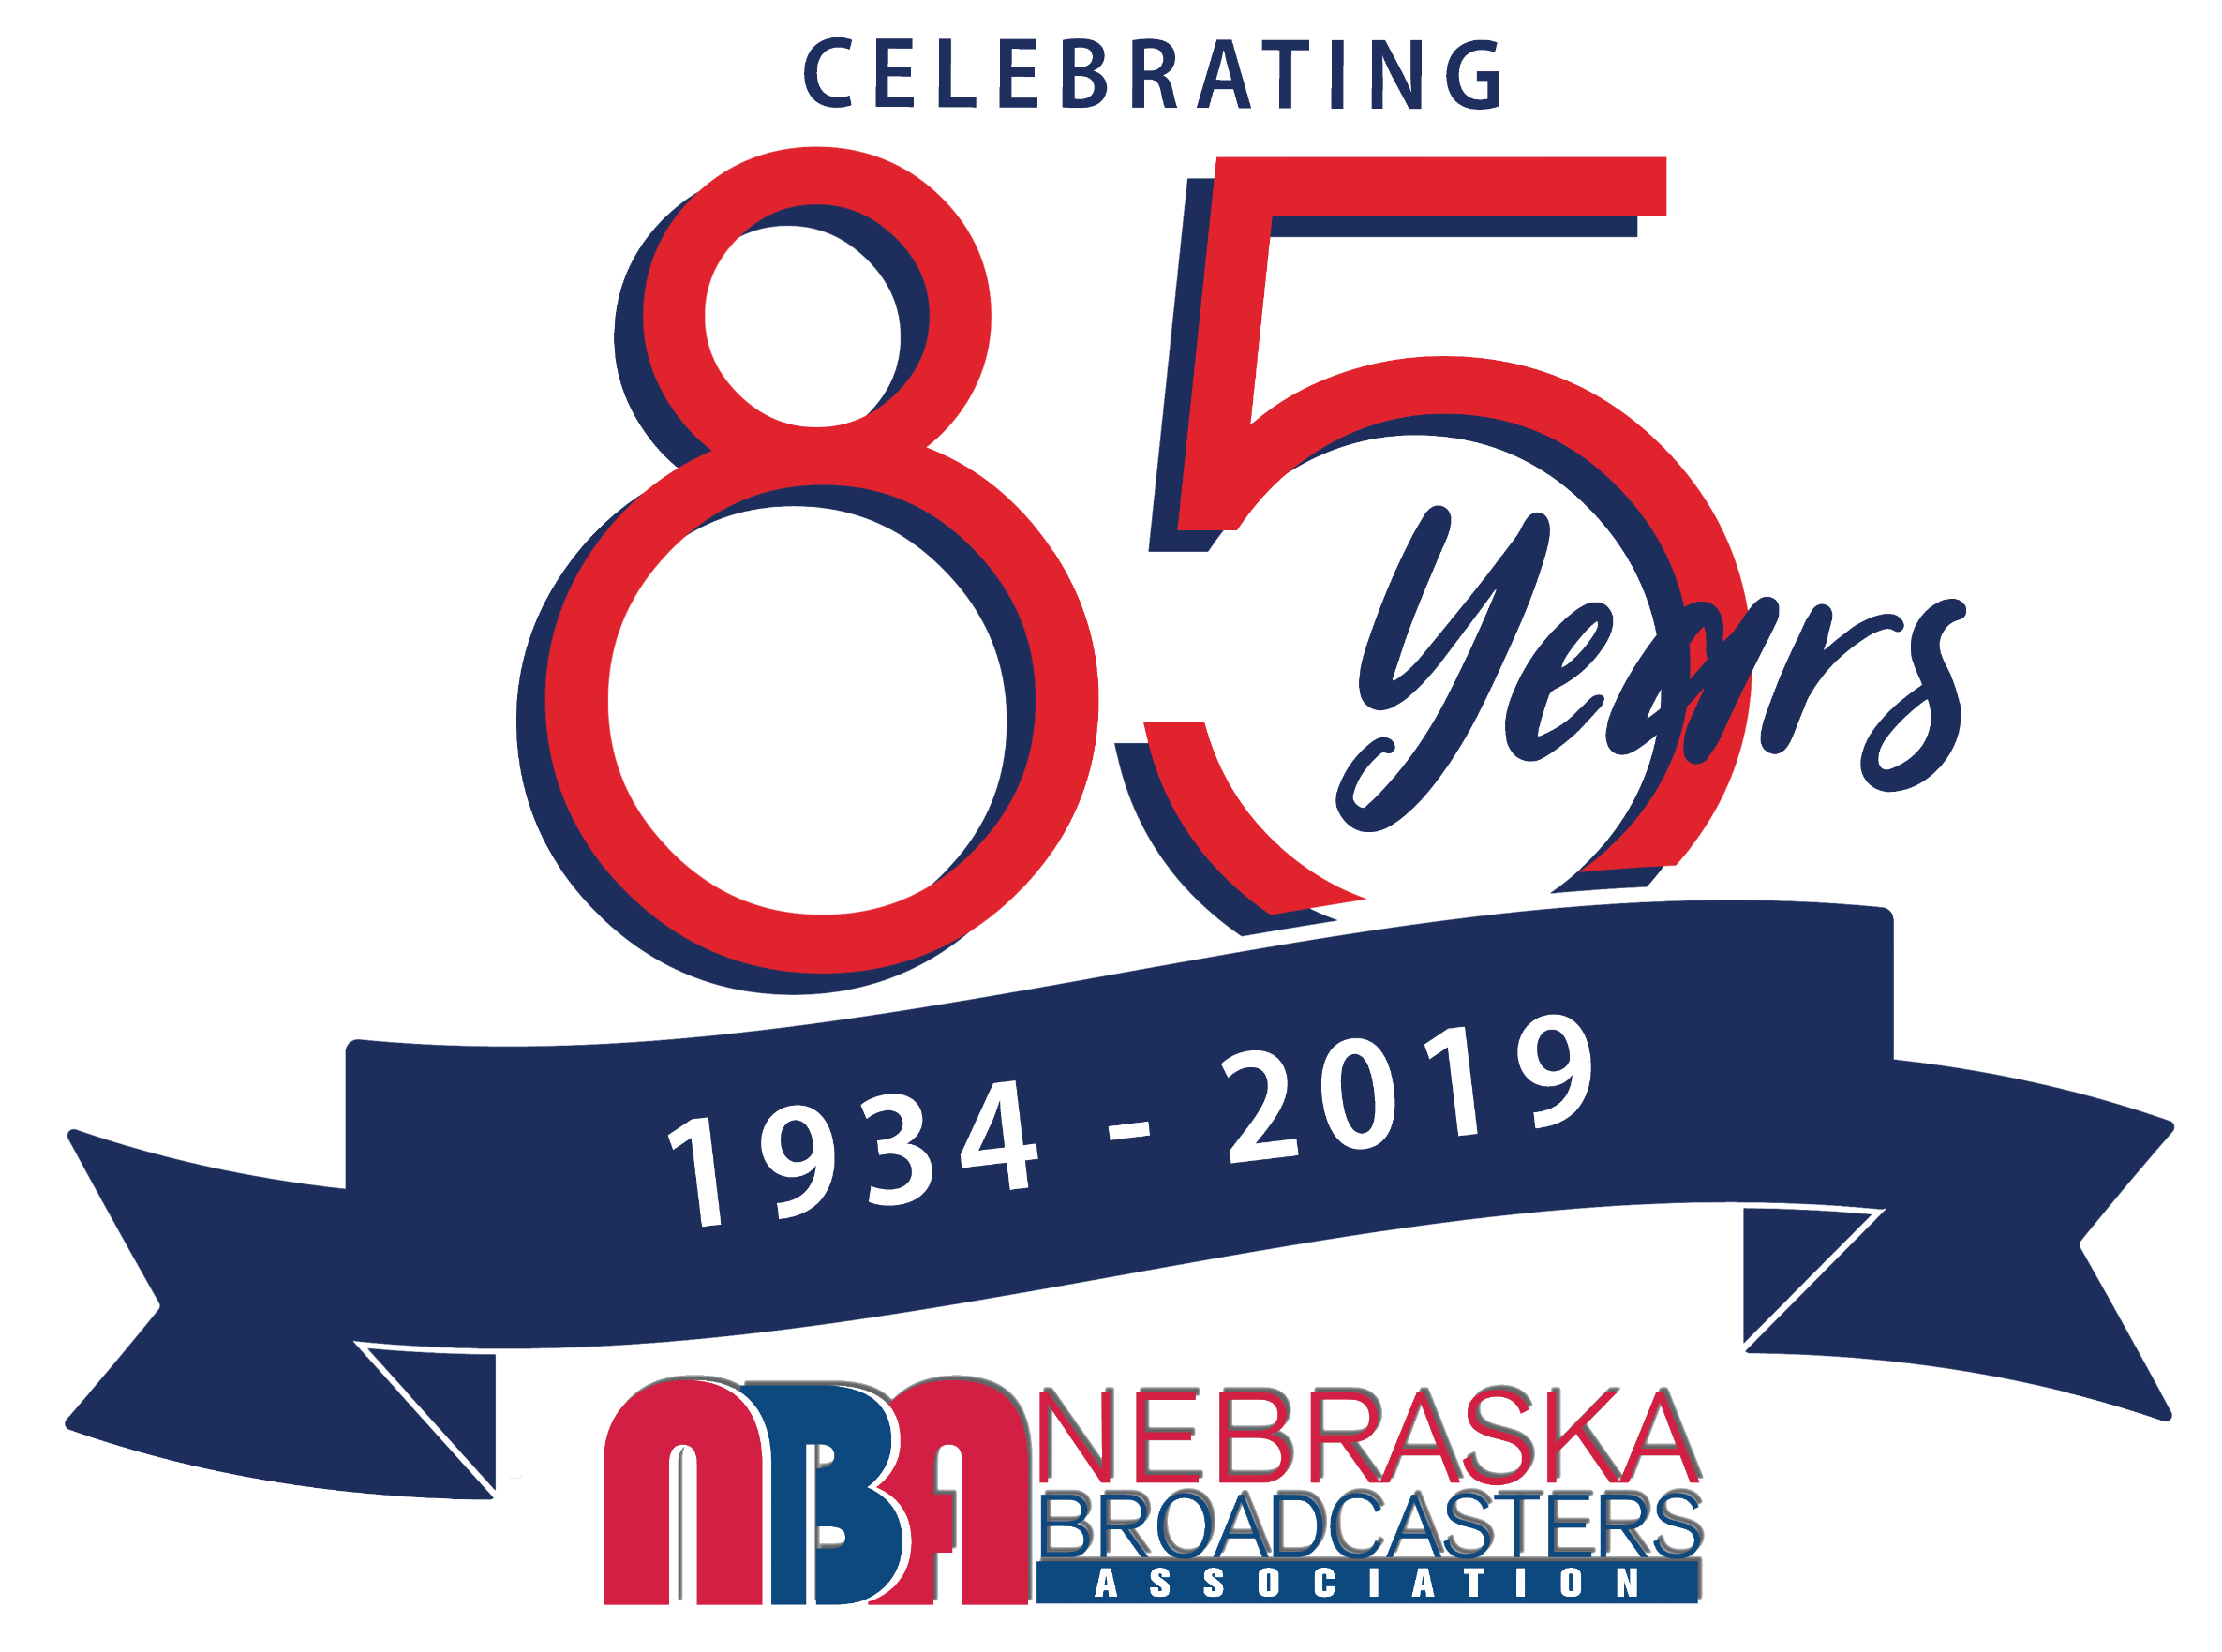 Nebraska Broadcasters Association